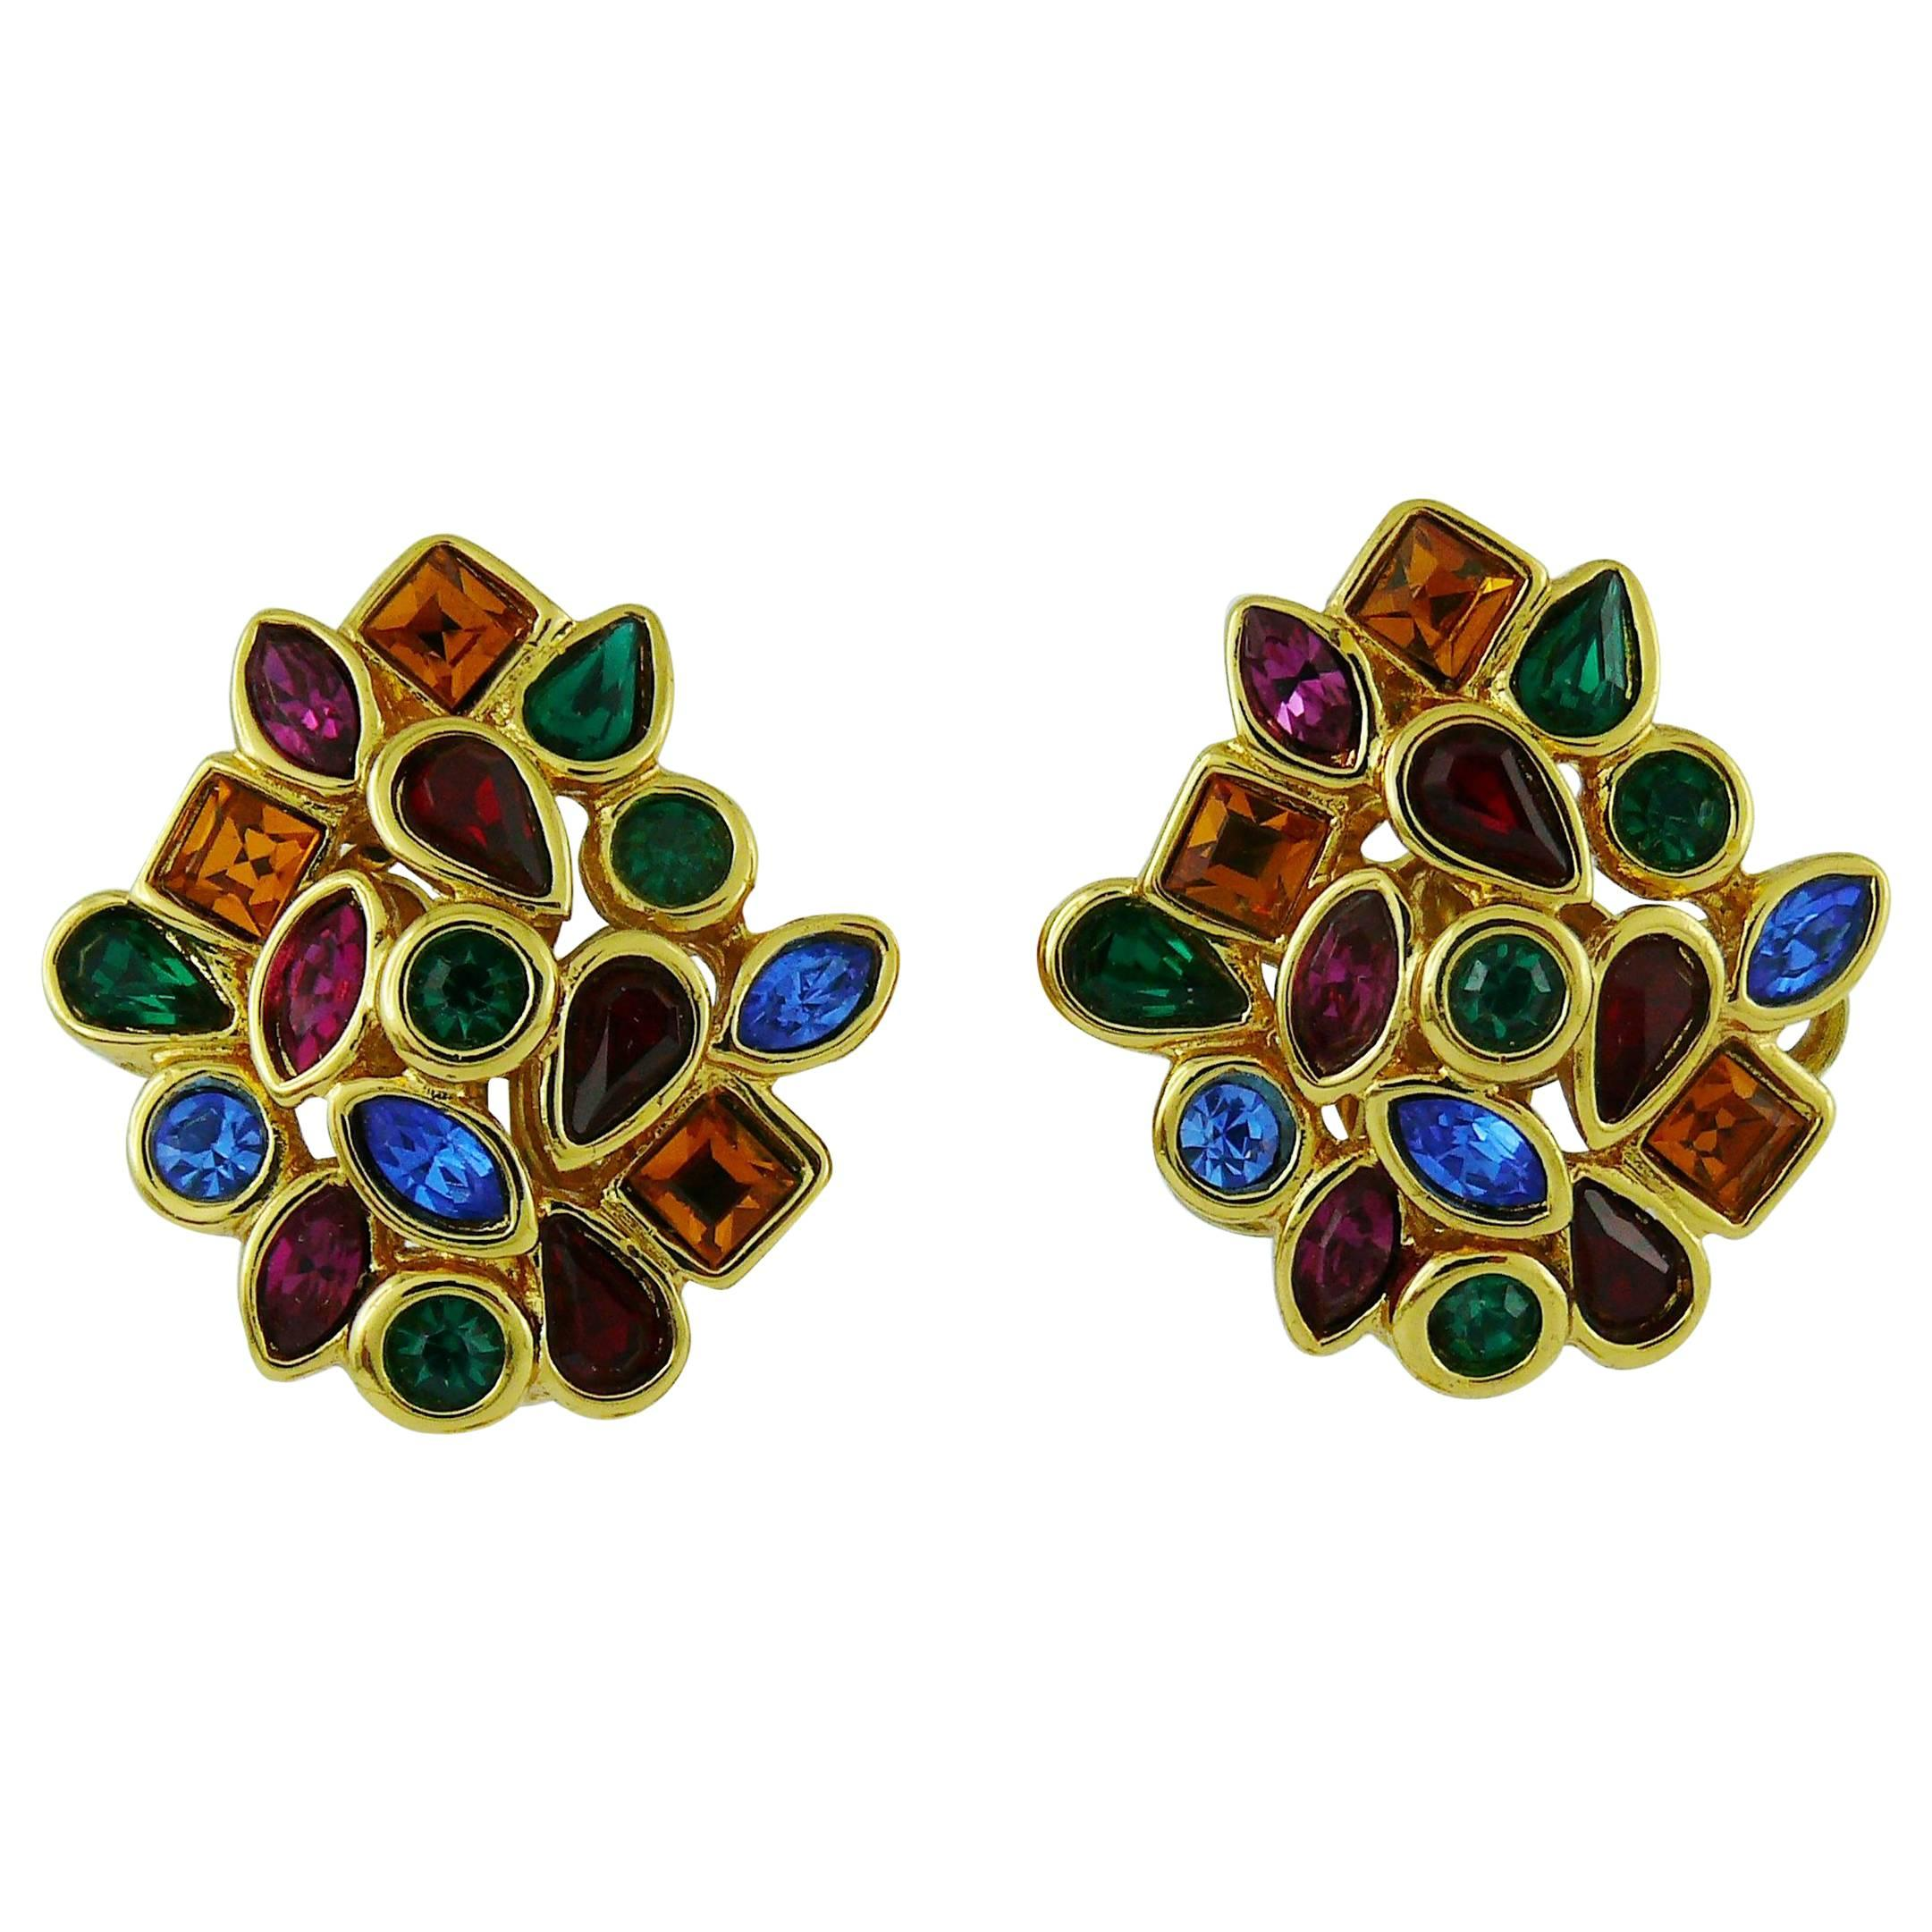 8d04a0e6a27 Yves Saint Laurent YSL Vintage Tutti Frutti Crystal Clip-On Earrings at  1stdibs